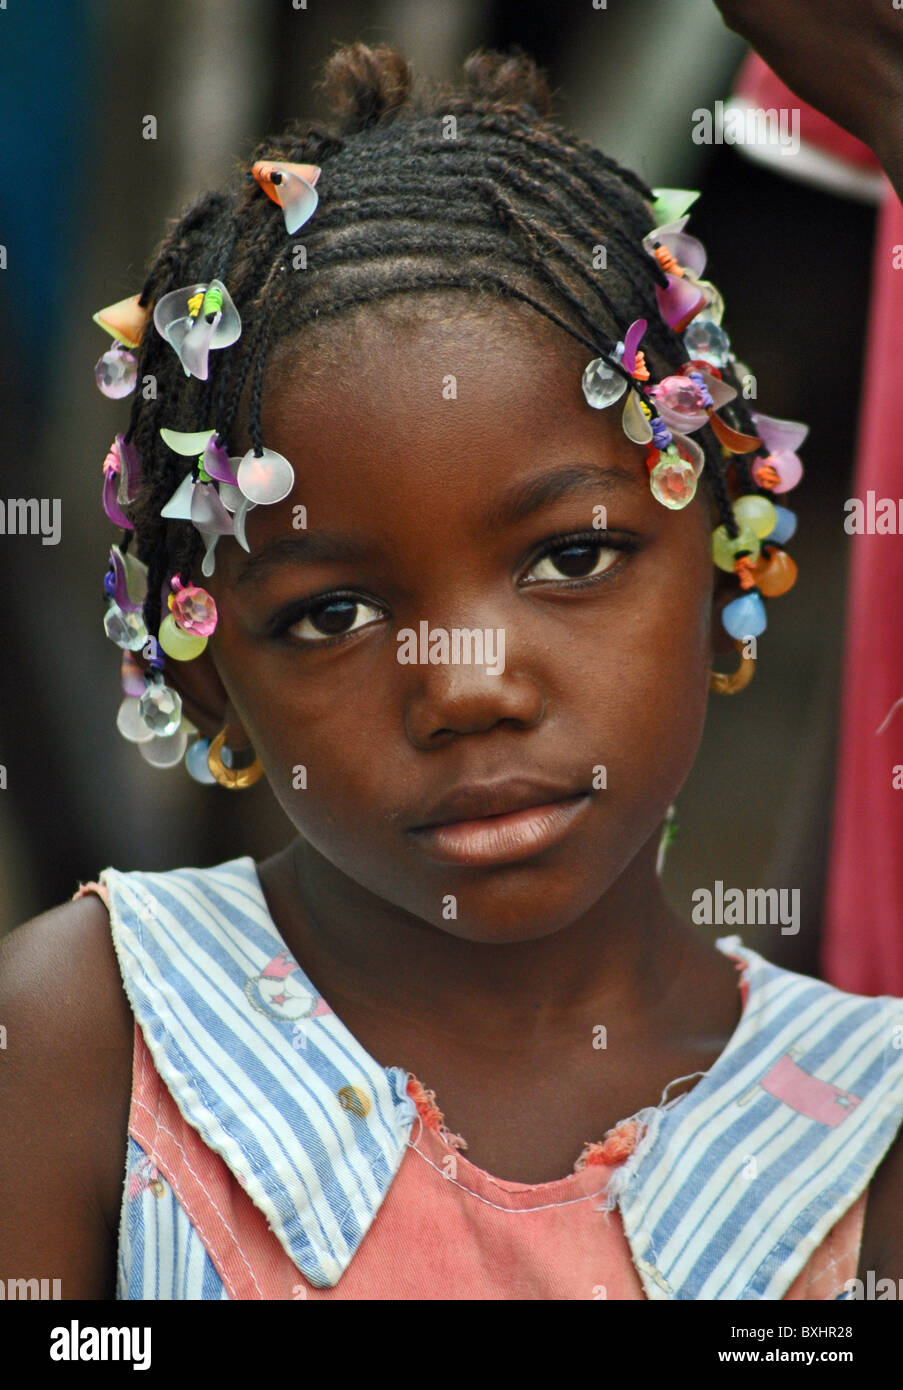 Girl with beads, Ferkessedougou, Ivory Coast - Stock Image